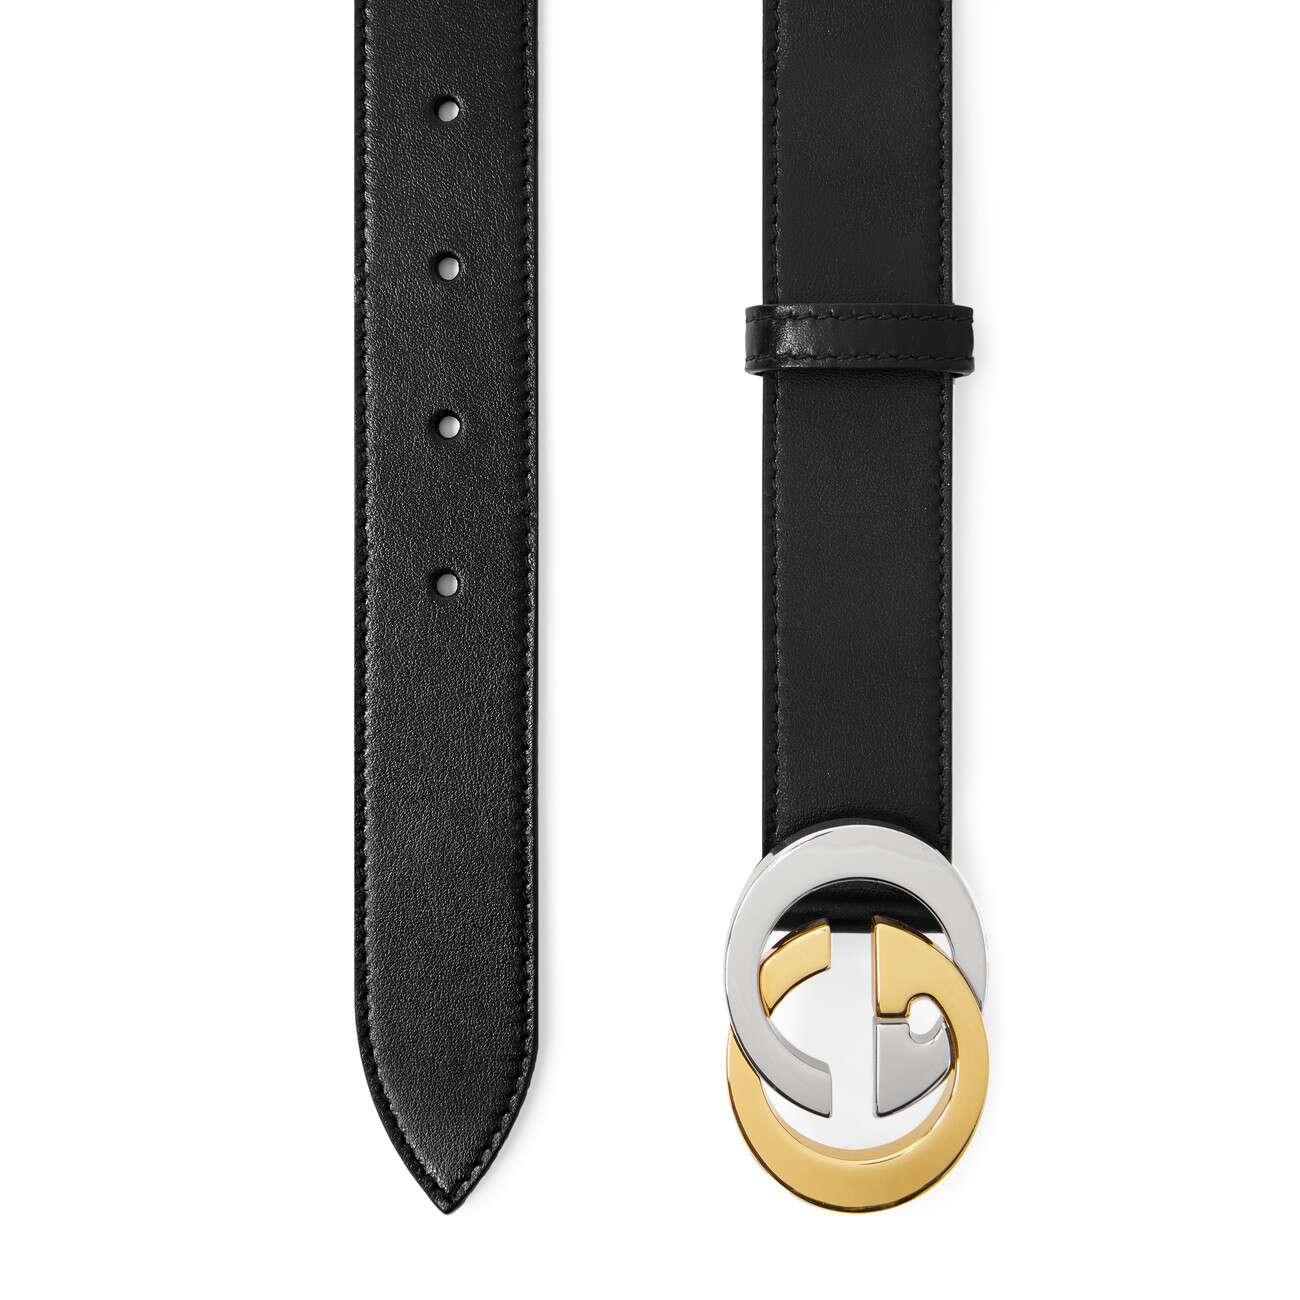 b869e9299a1 Gucci - Black Belt With Interlocking G Buckle for Men - Lyst. View  fullscreen